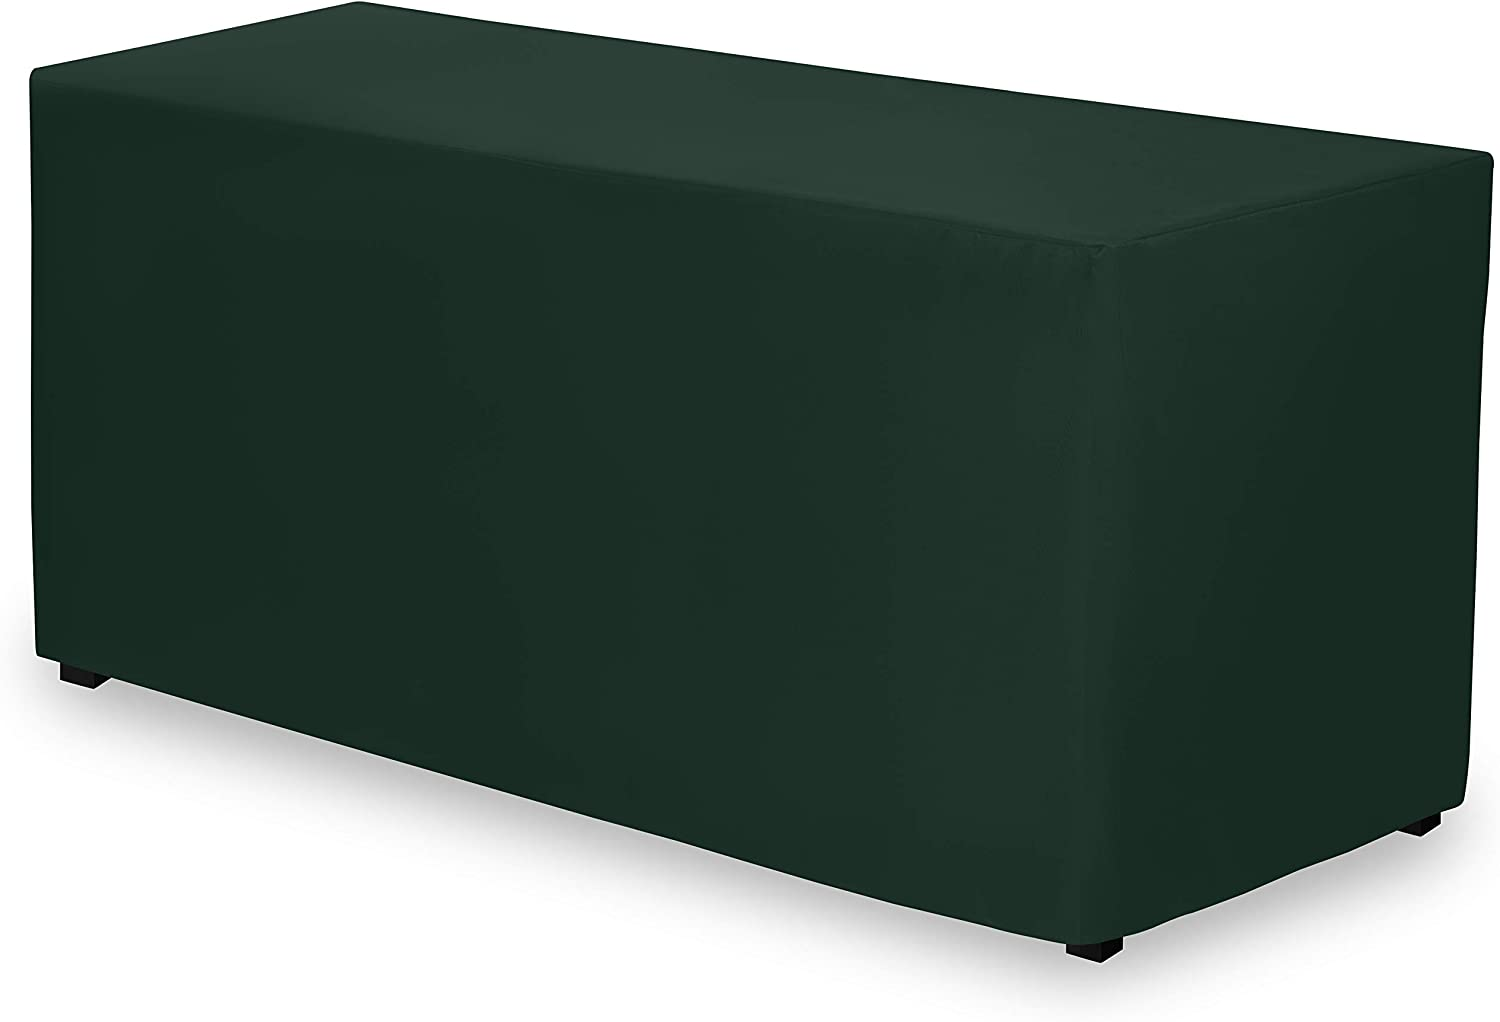 Gee Di Moda Fitted Tablecloth - 72 x 30 Inch - Hunter Green Fitted Rectangle Table Cloth for 6 Foot Table in Washable Polyester - Great for Buffet Table, Parties, Holiday Dinner, Wedding & Trade Show